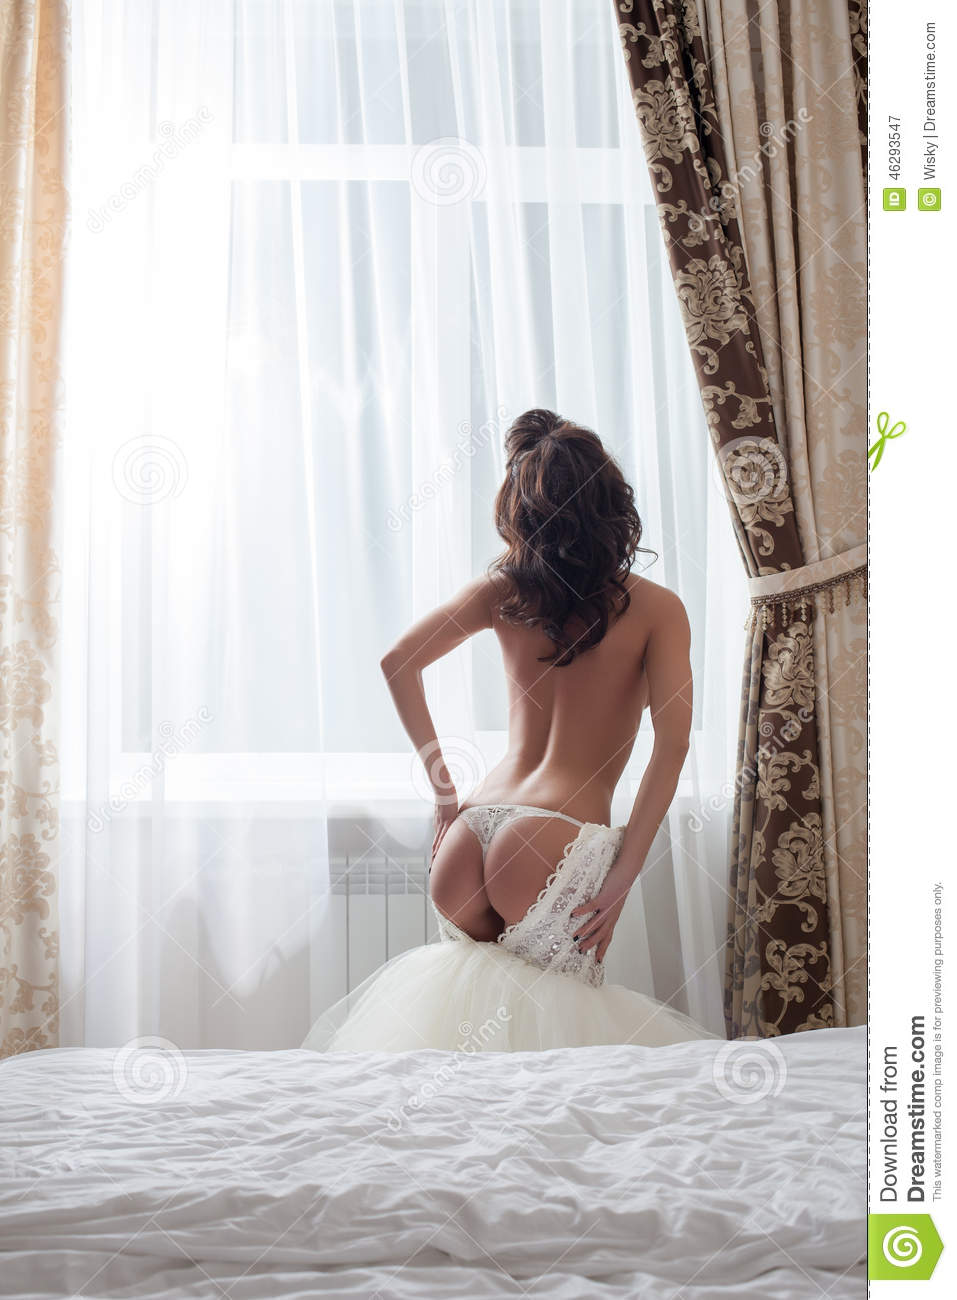 Rear View Of Sexy Naked Bride In Hotel Room Stock Photo